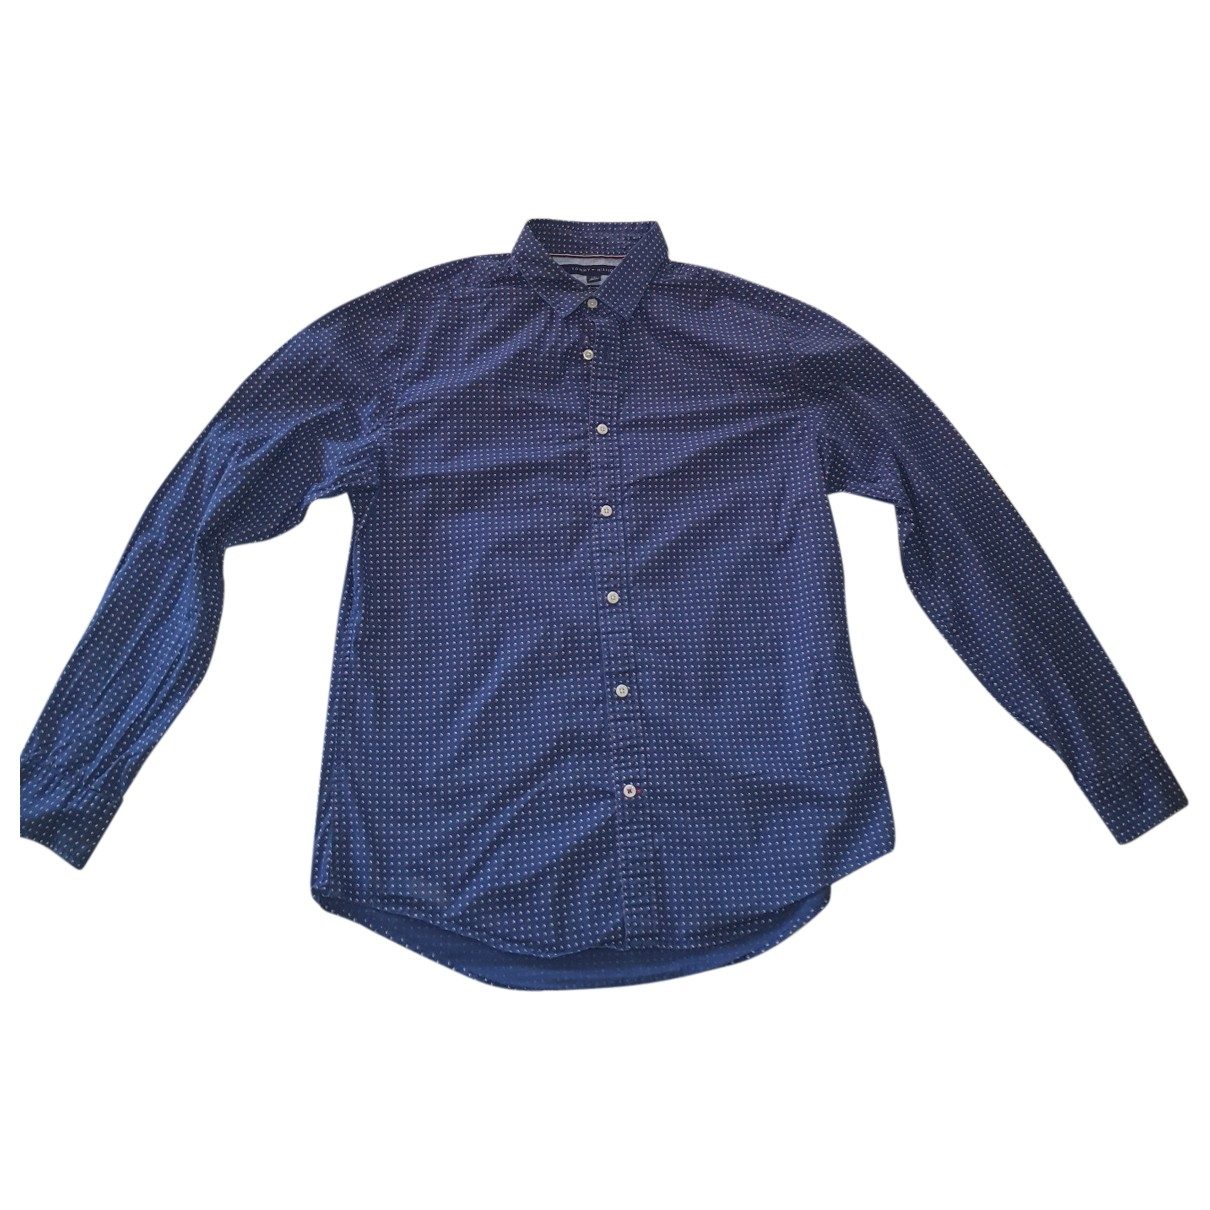 Tommy Hilfiger \N Blue Cotton Shirts for Men L International